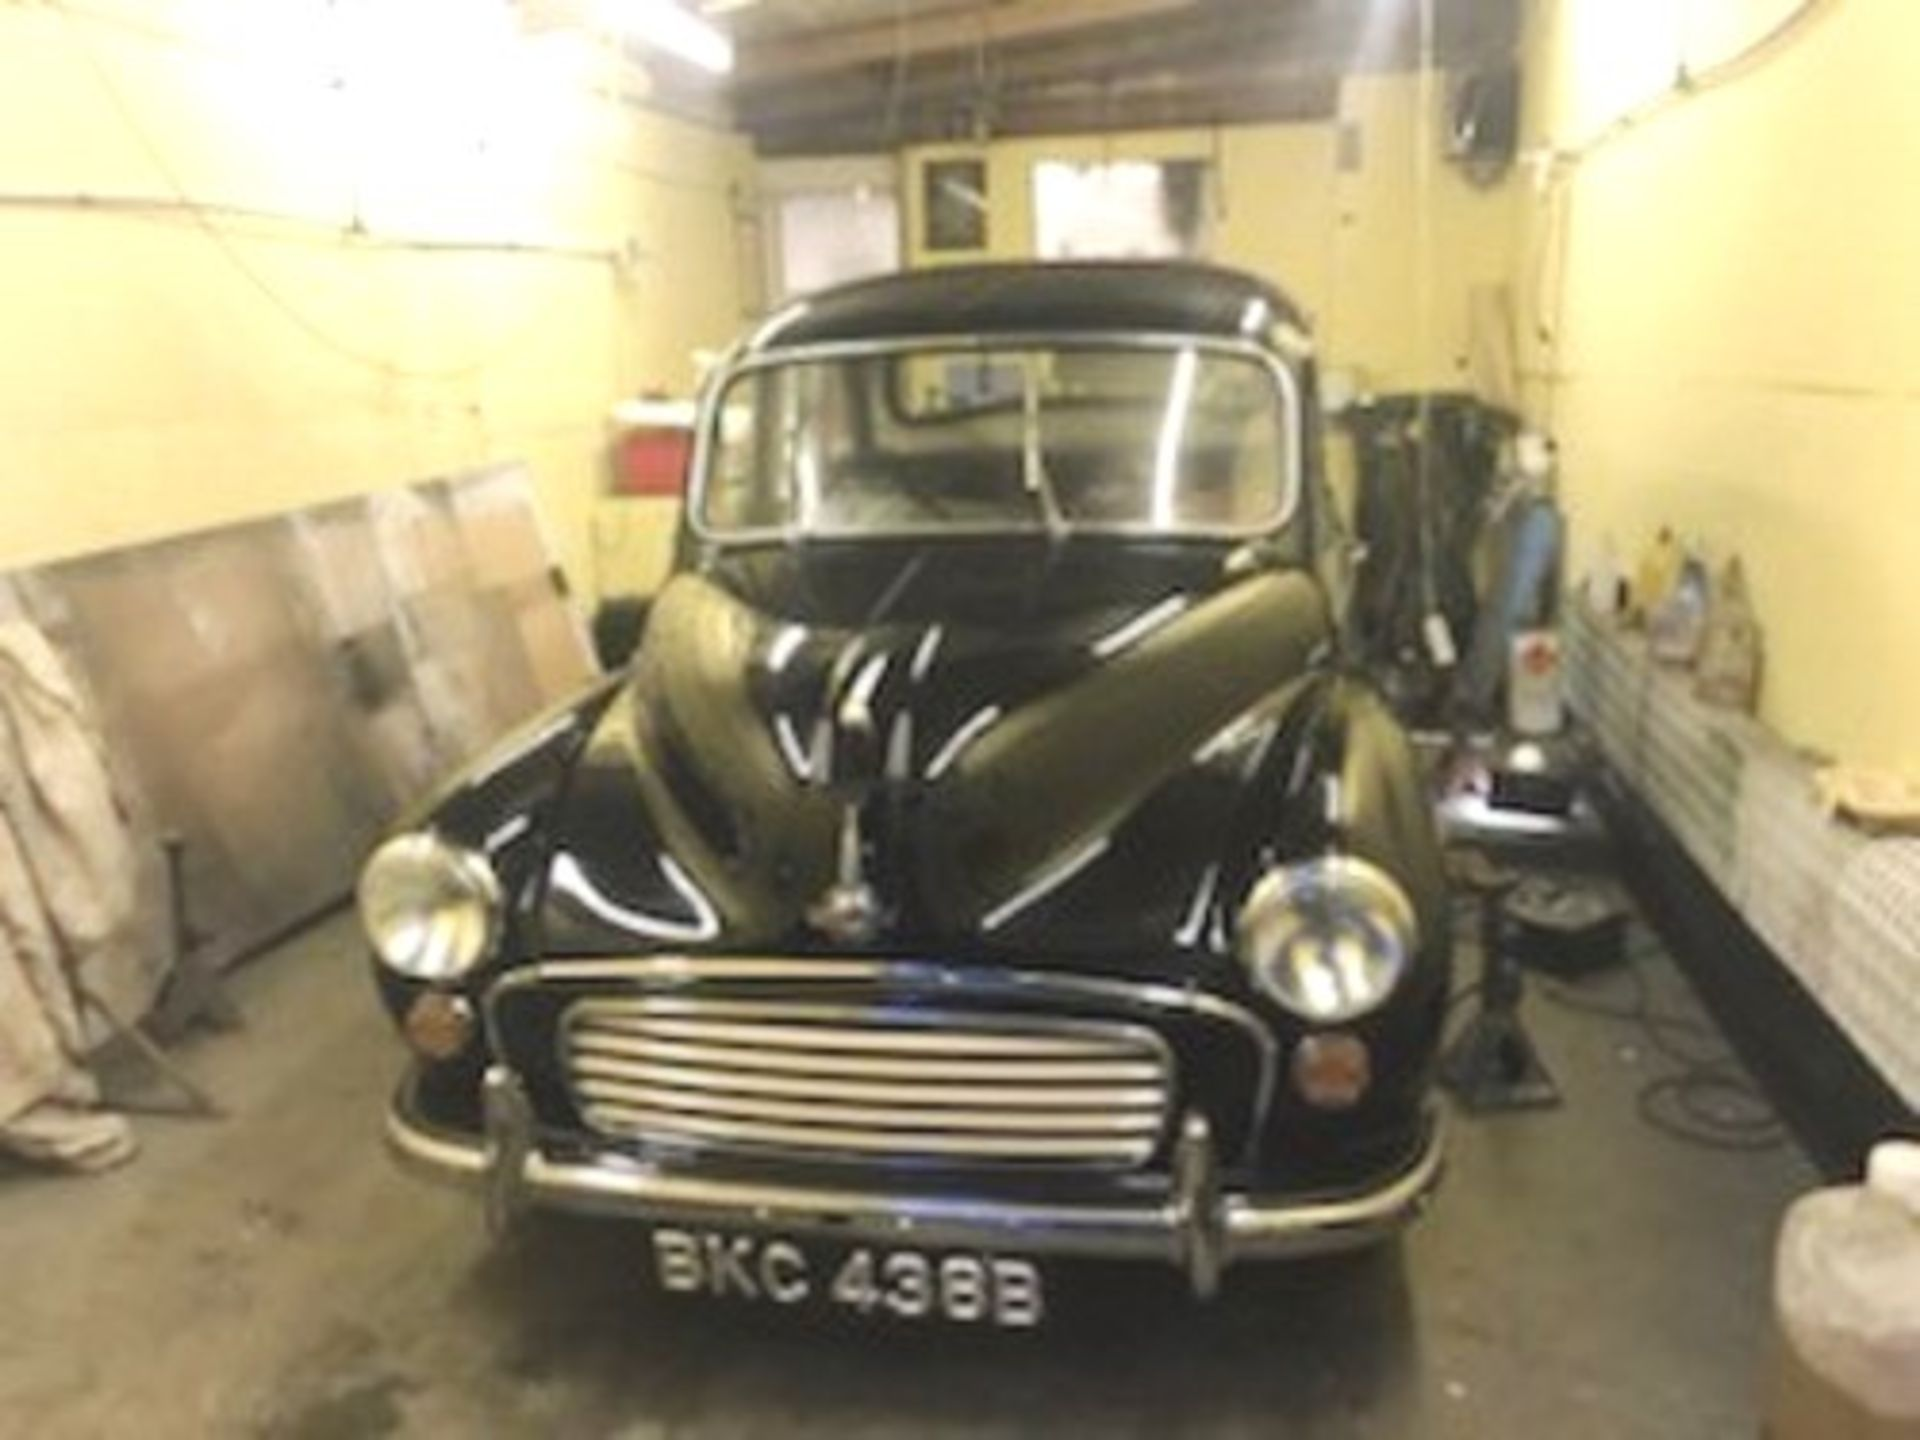 1964 Morris Minor 1000 in original black. The car has been restored with new flooring and vinyl - Image 2 of 16